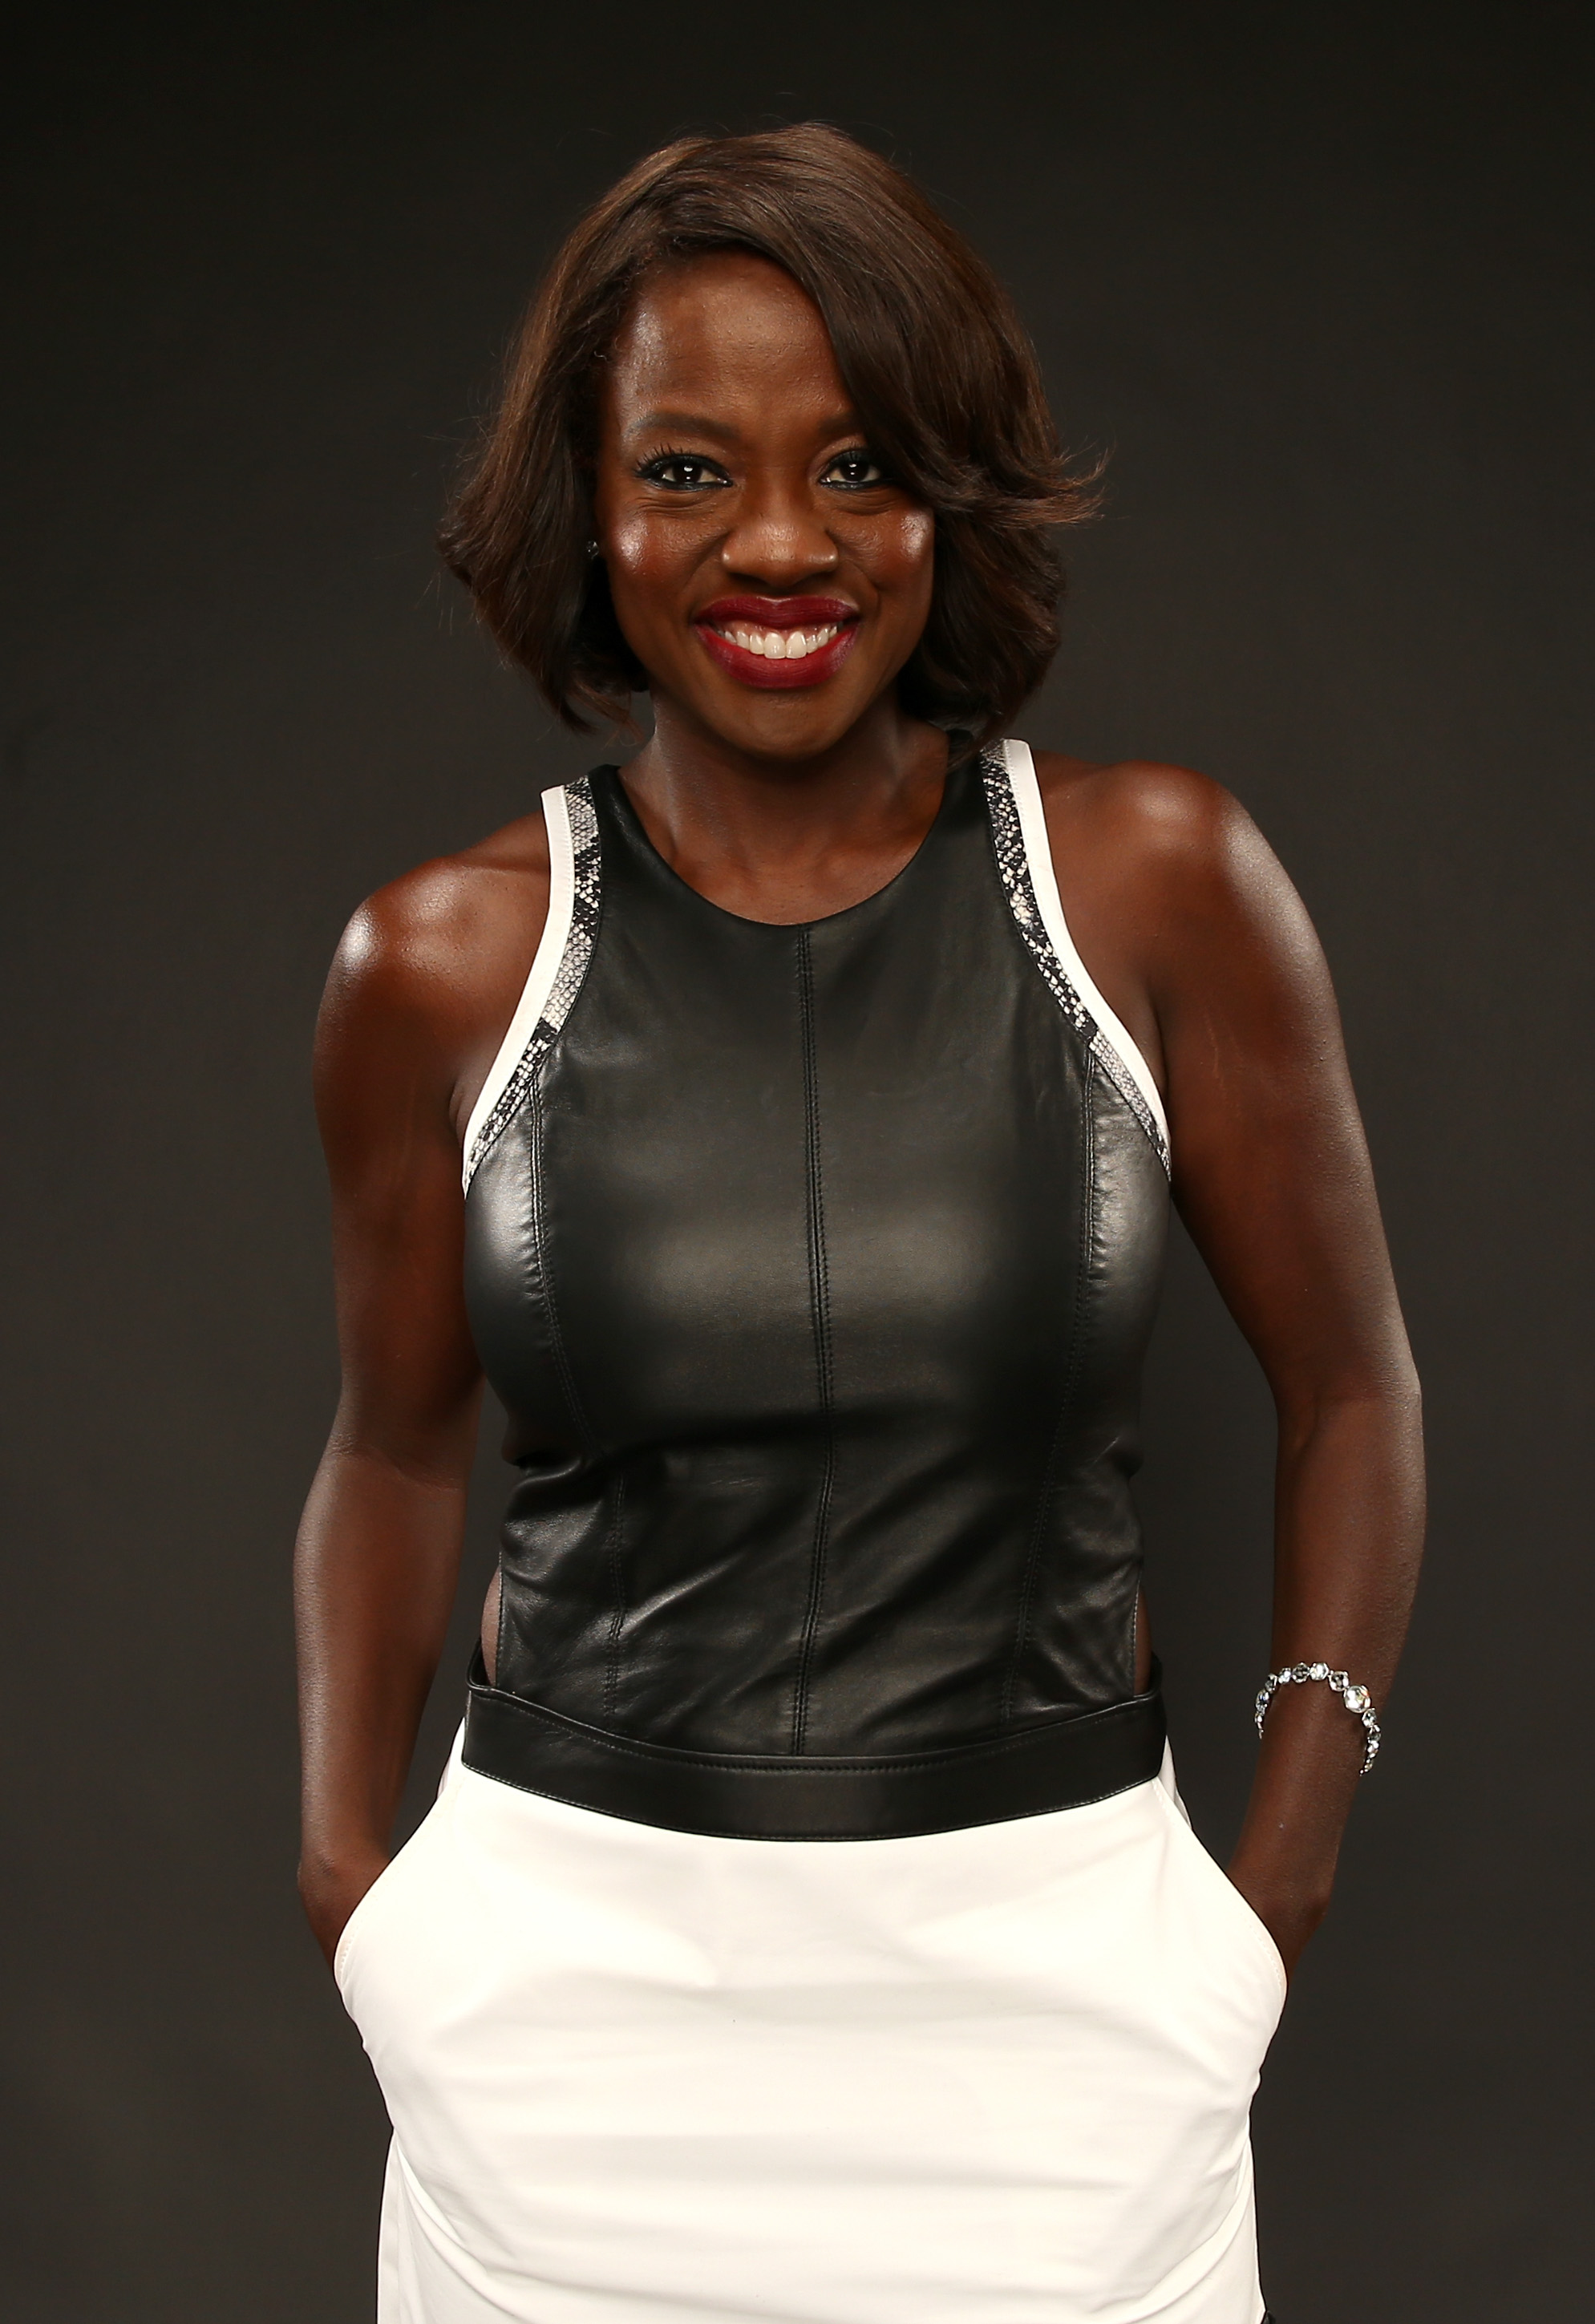 ABC's 'How to Get Away with Murder' actress Viola Davis poses for a portrait during ABC's 2014 TCA summer press tour at The Beverly Hilton Hotel on July 15, 2014 in Beverly Hills.